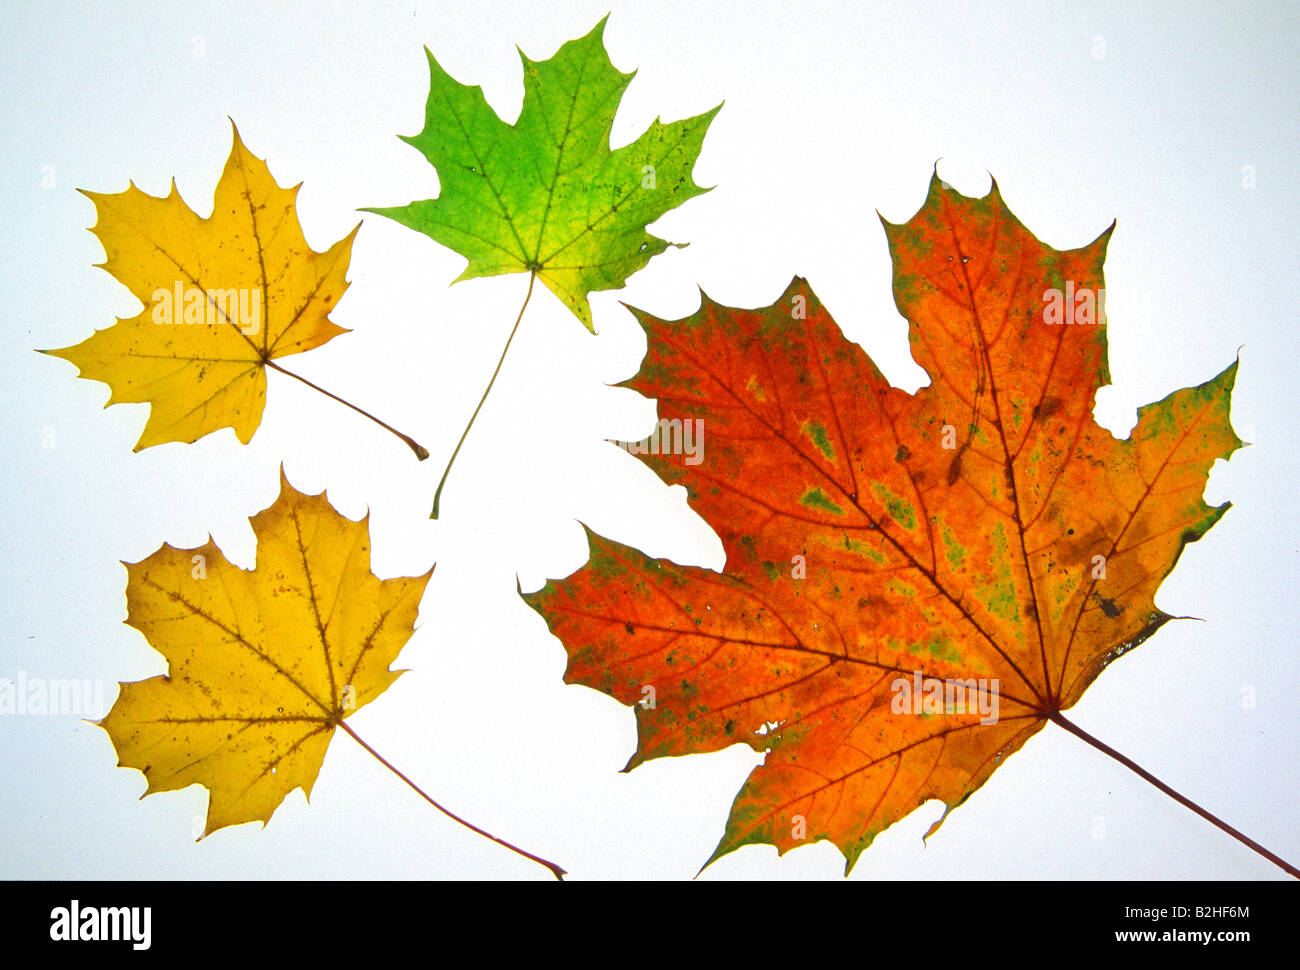 maple tree leave acer afterimage backcloth background image backdrop close up pattern patterns Stock Photo